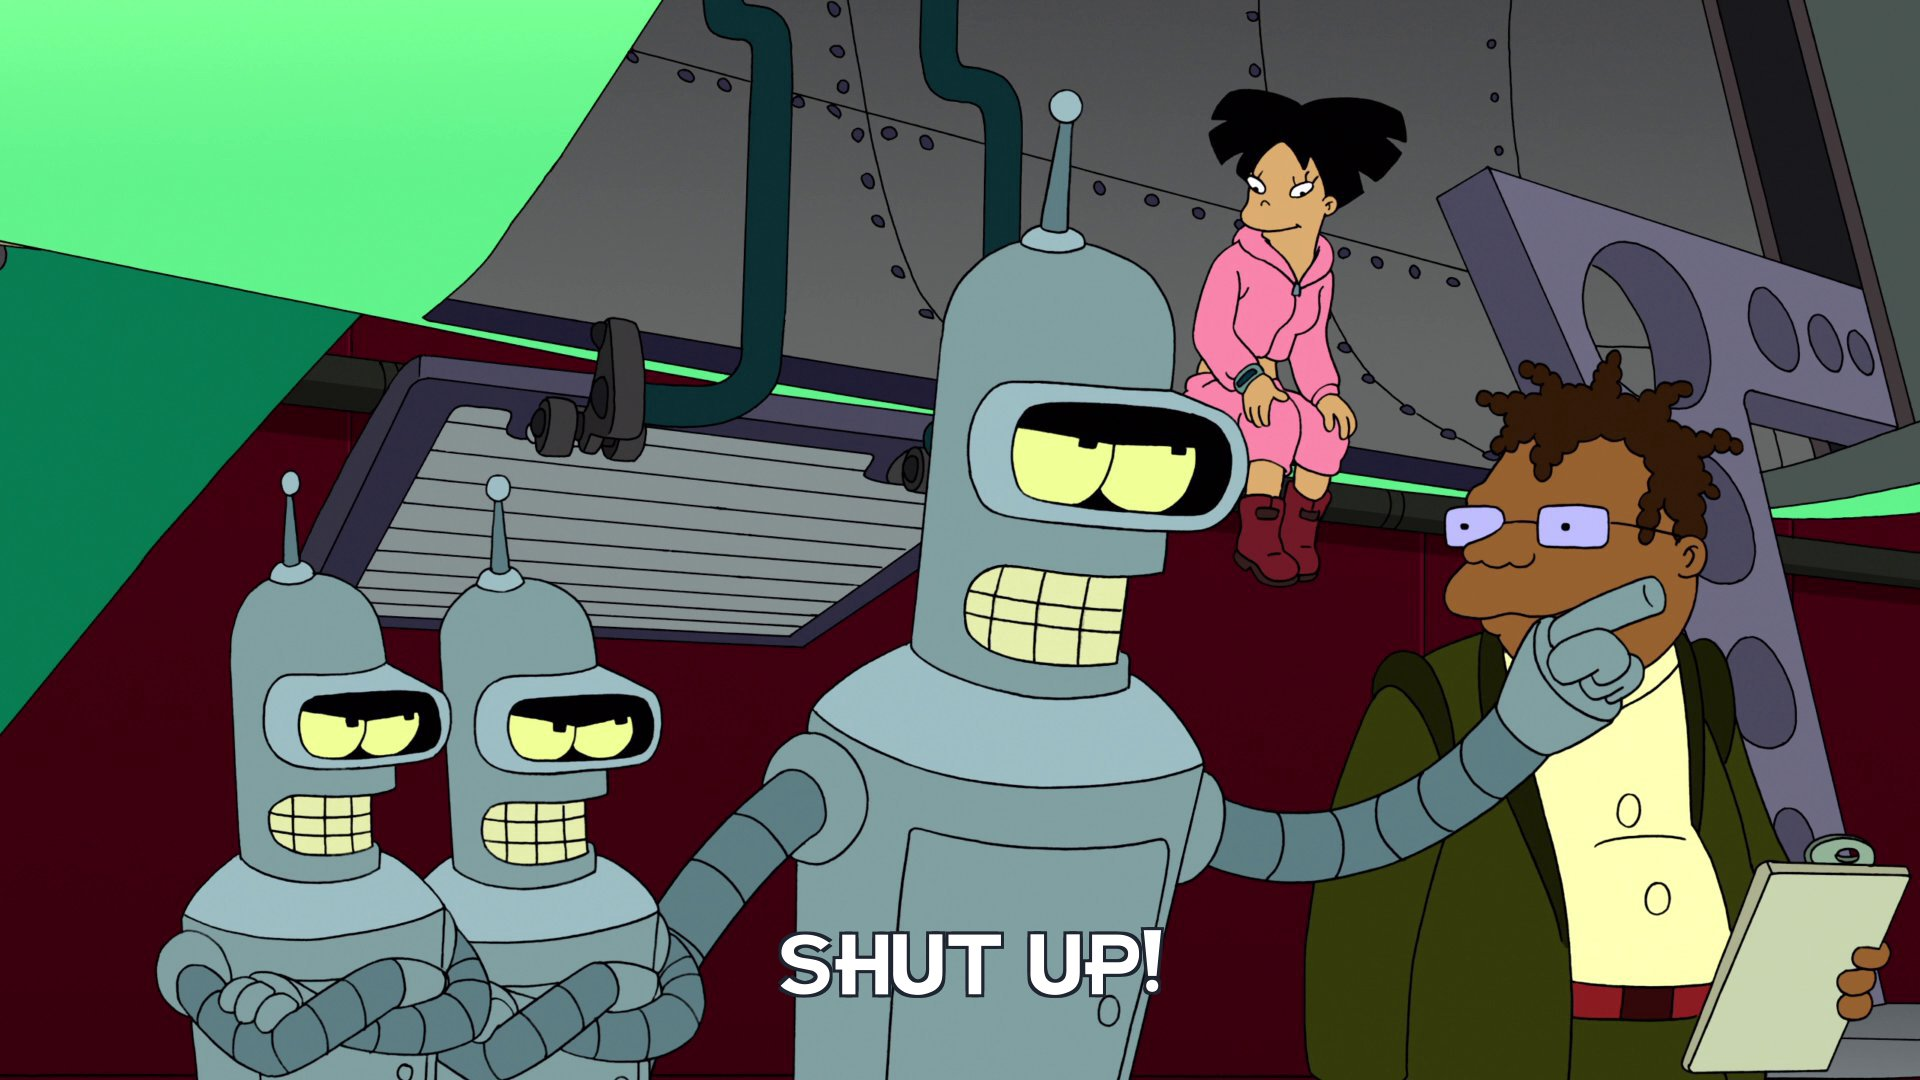 Bender Bending Rodriguez: Shut up!